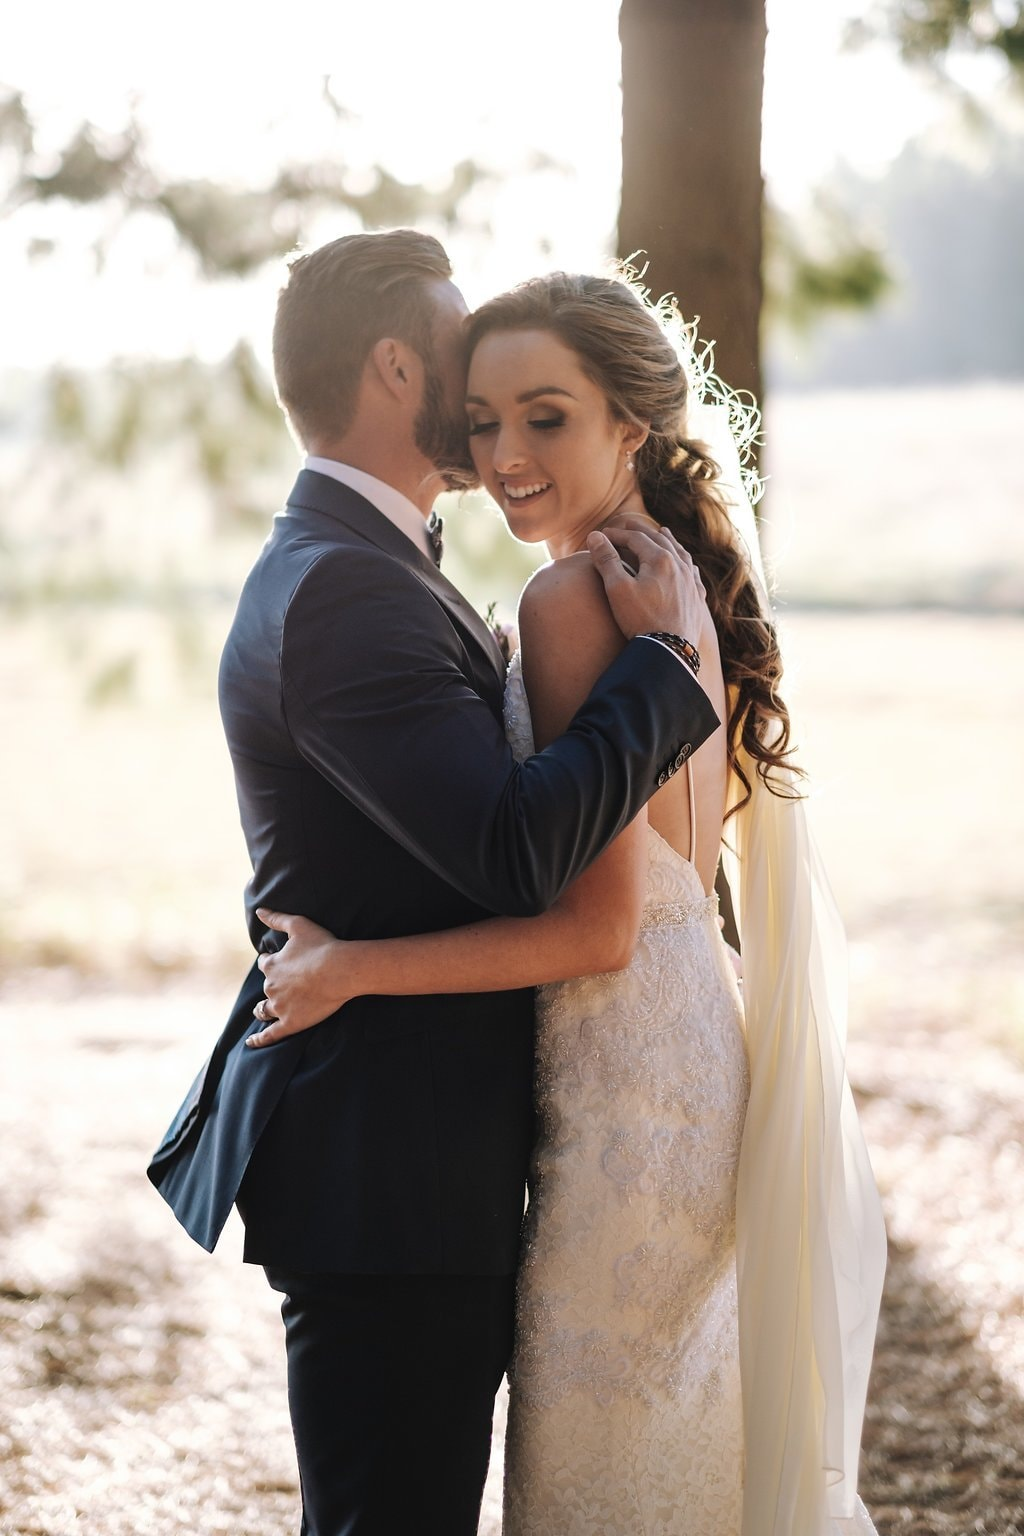 Bride and Groom | Image: The Shank Tank